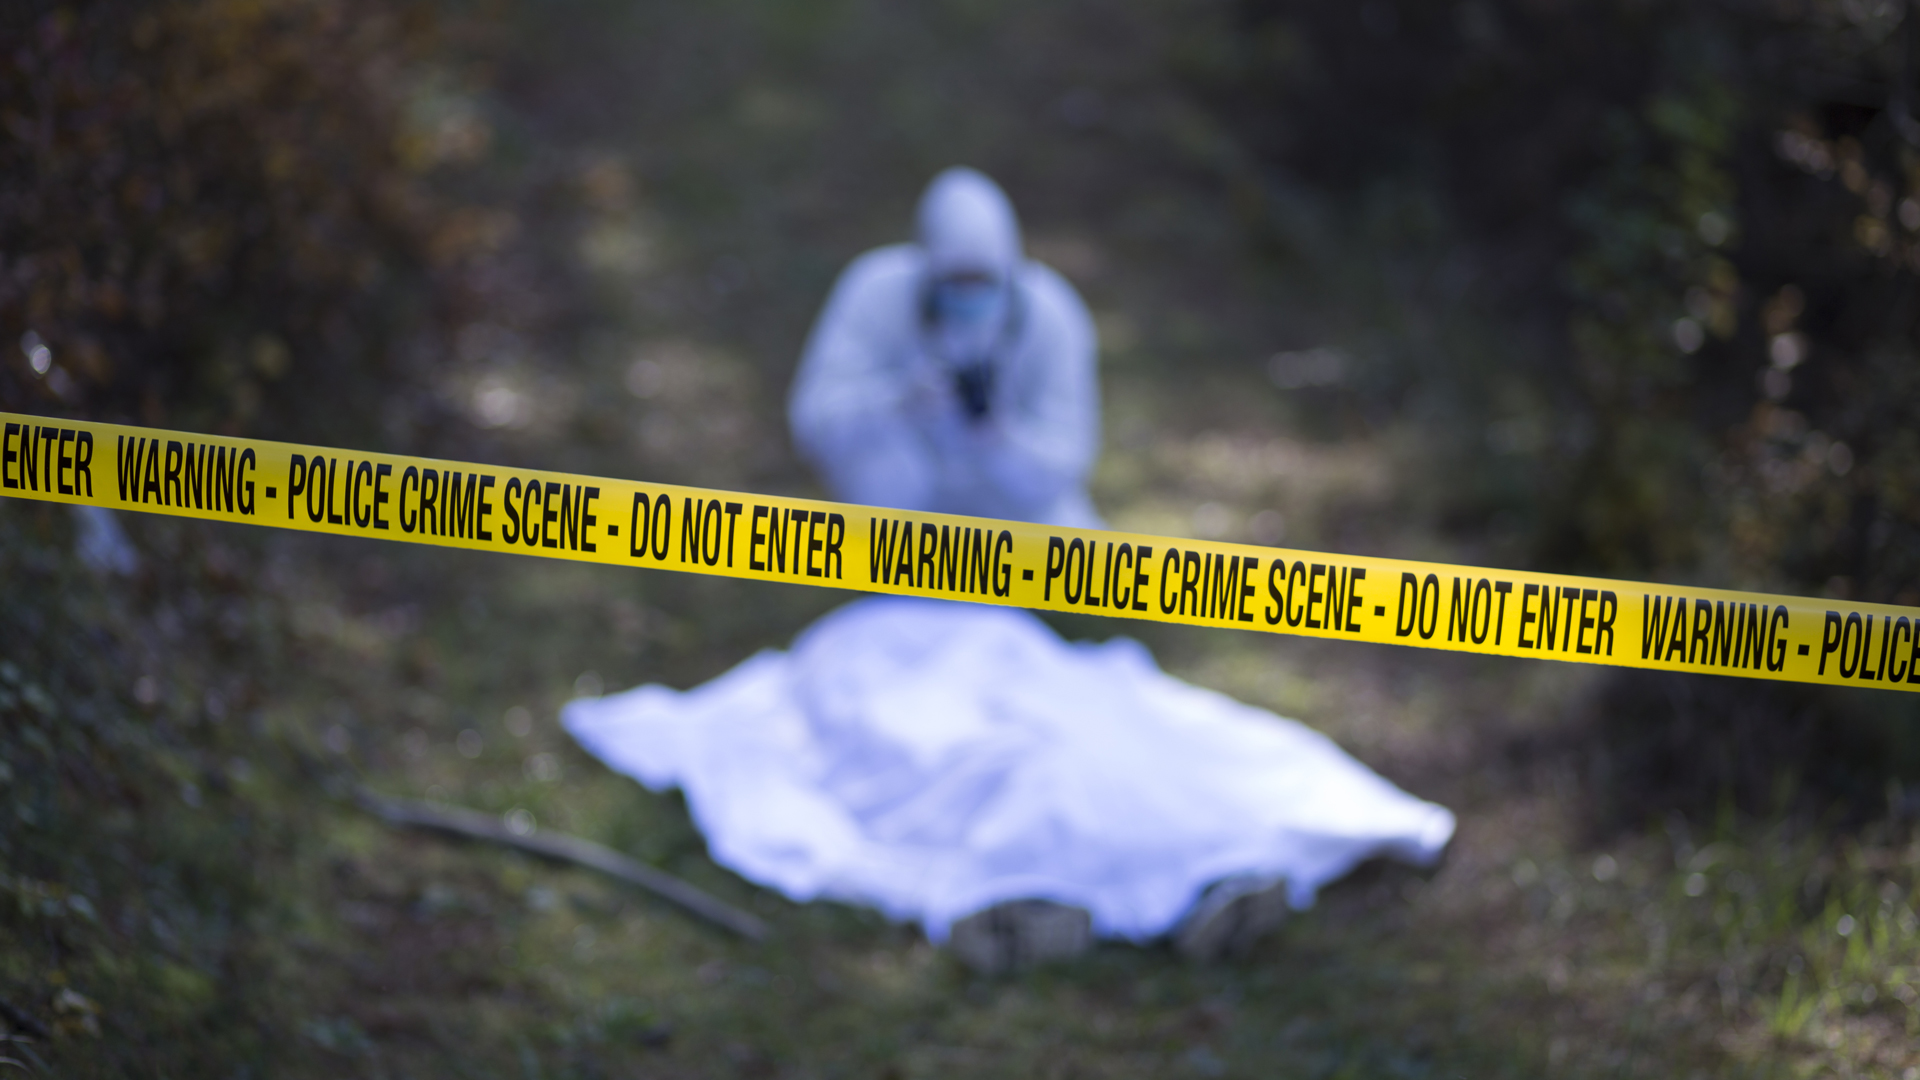 Has COVID-19 Contributed to an Increase in the U.S. Murder Rate?